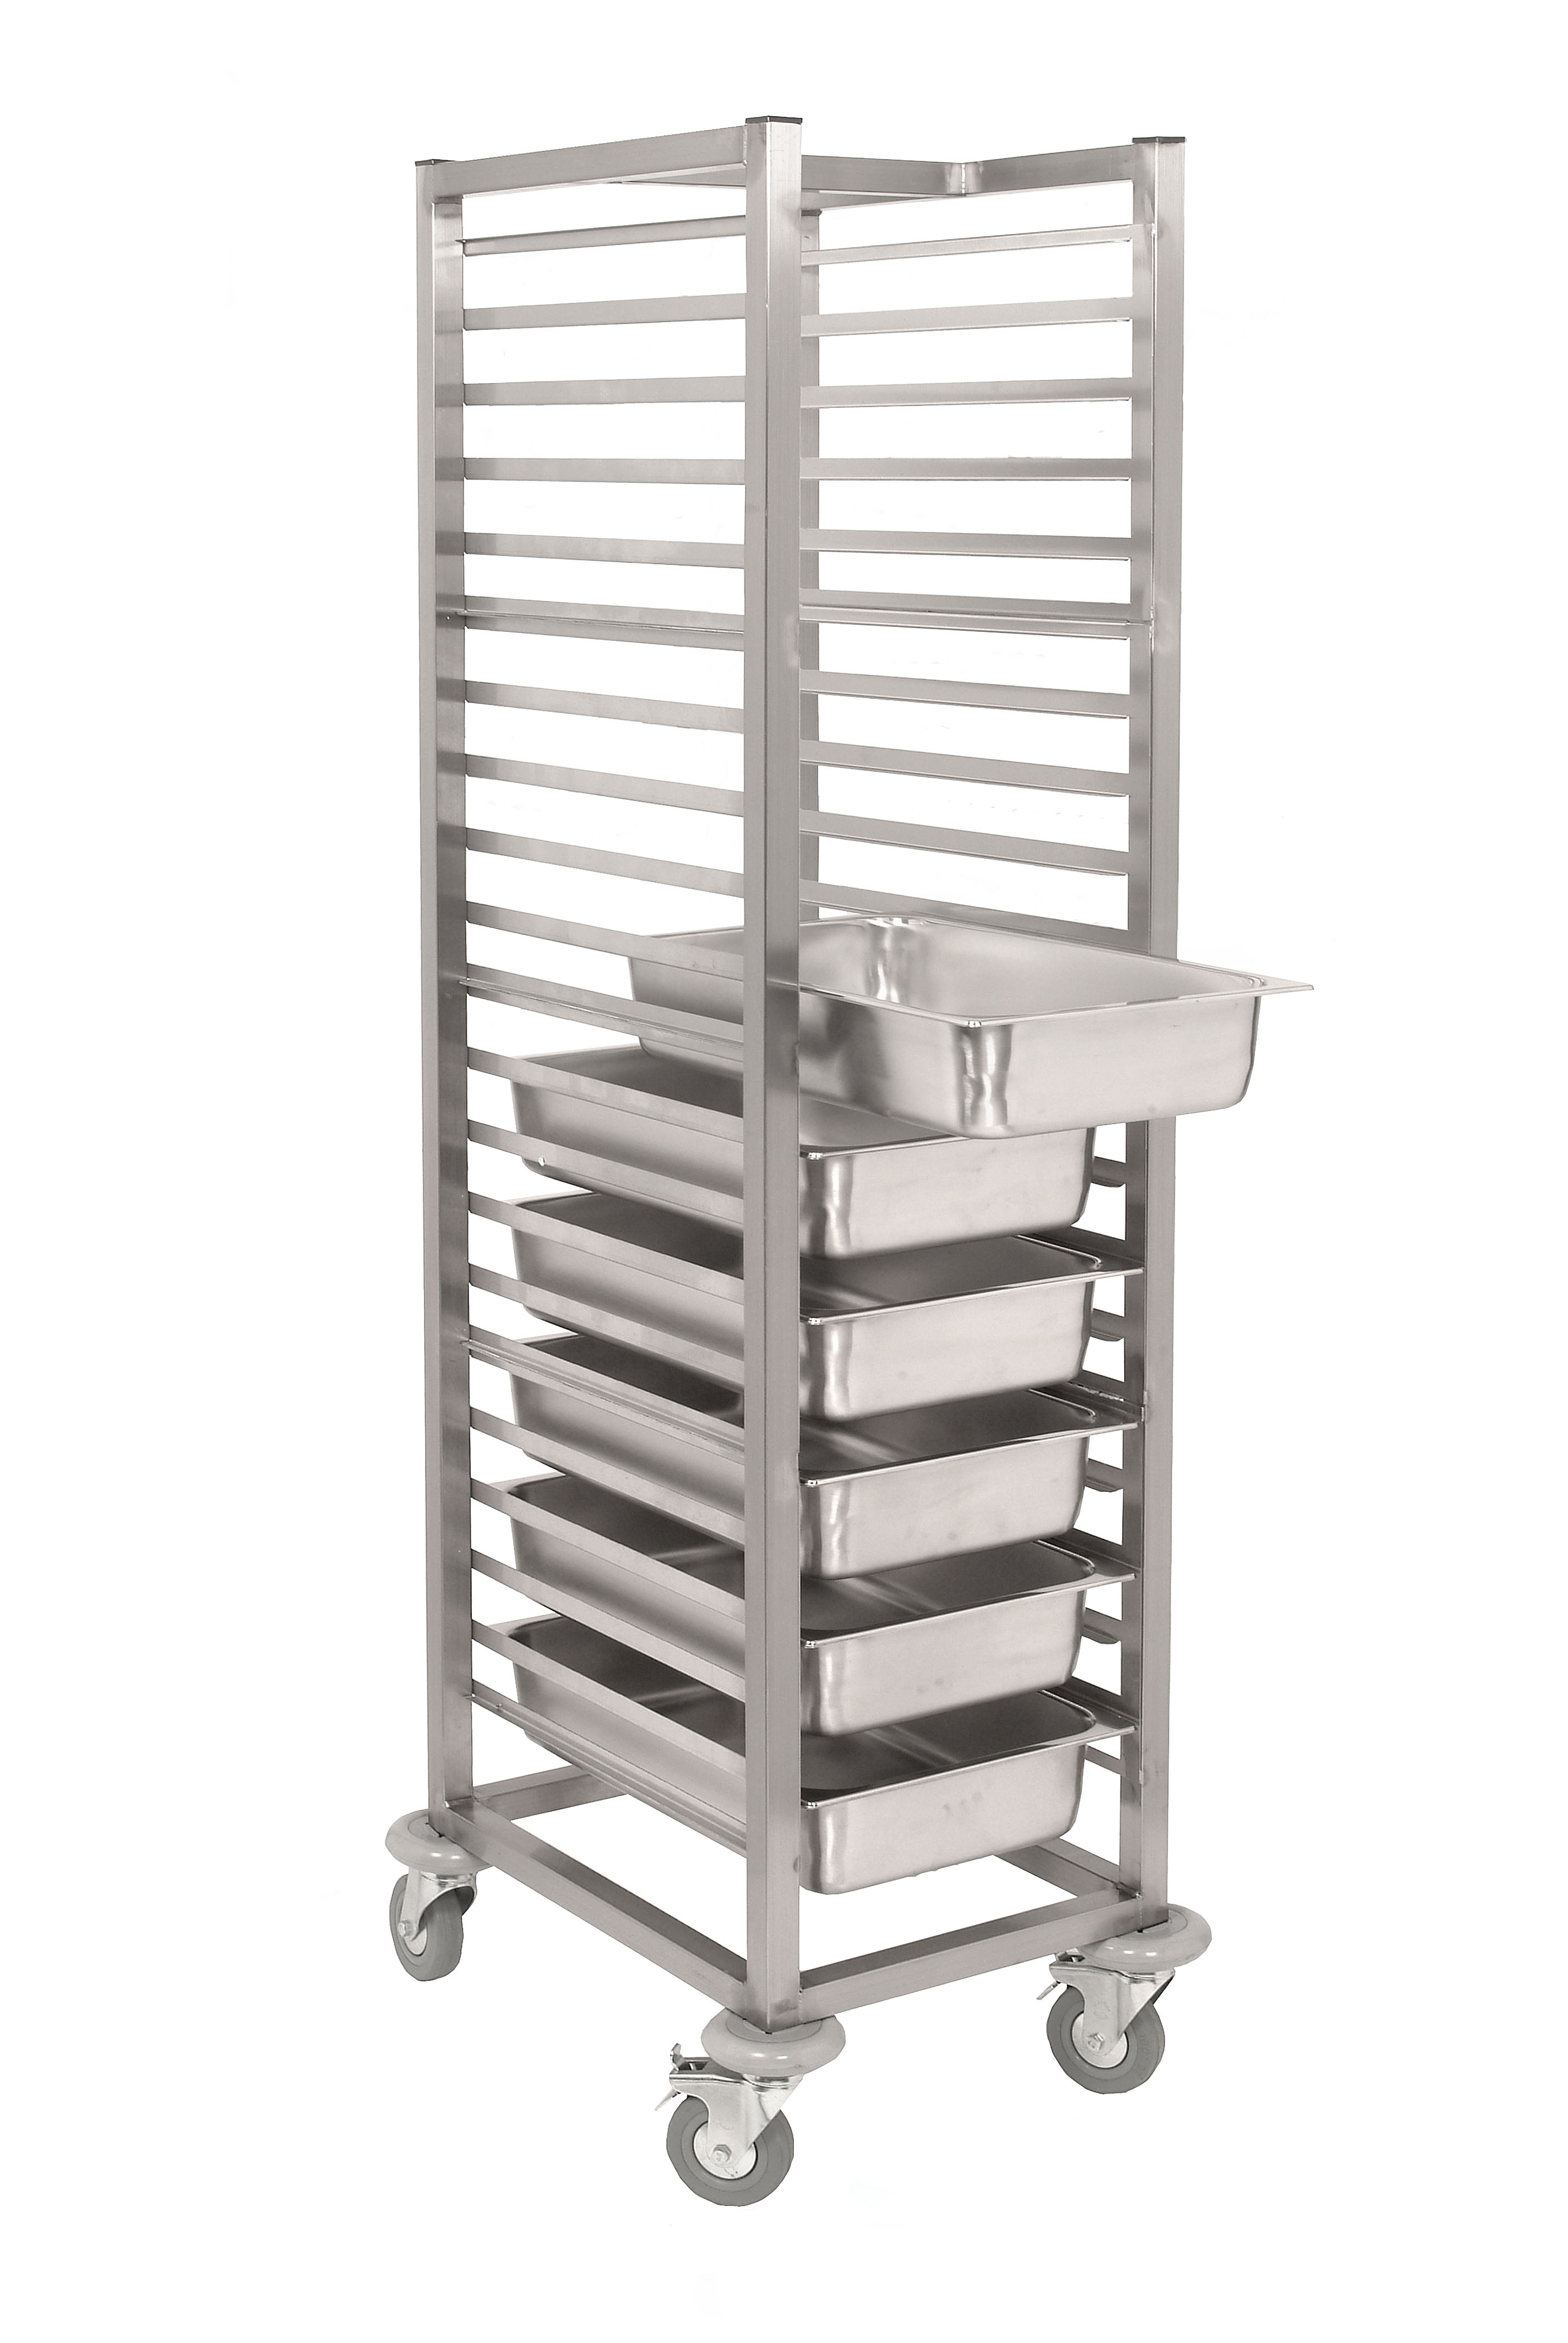 Sct1600 Stainless Steel Gastronorm Tray Trolley Parry